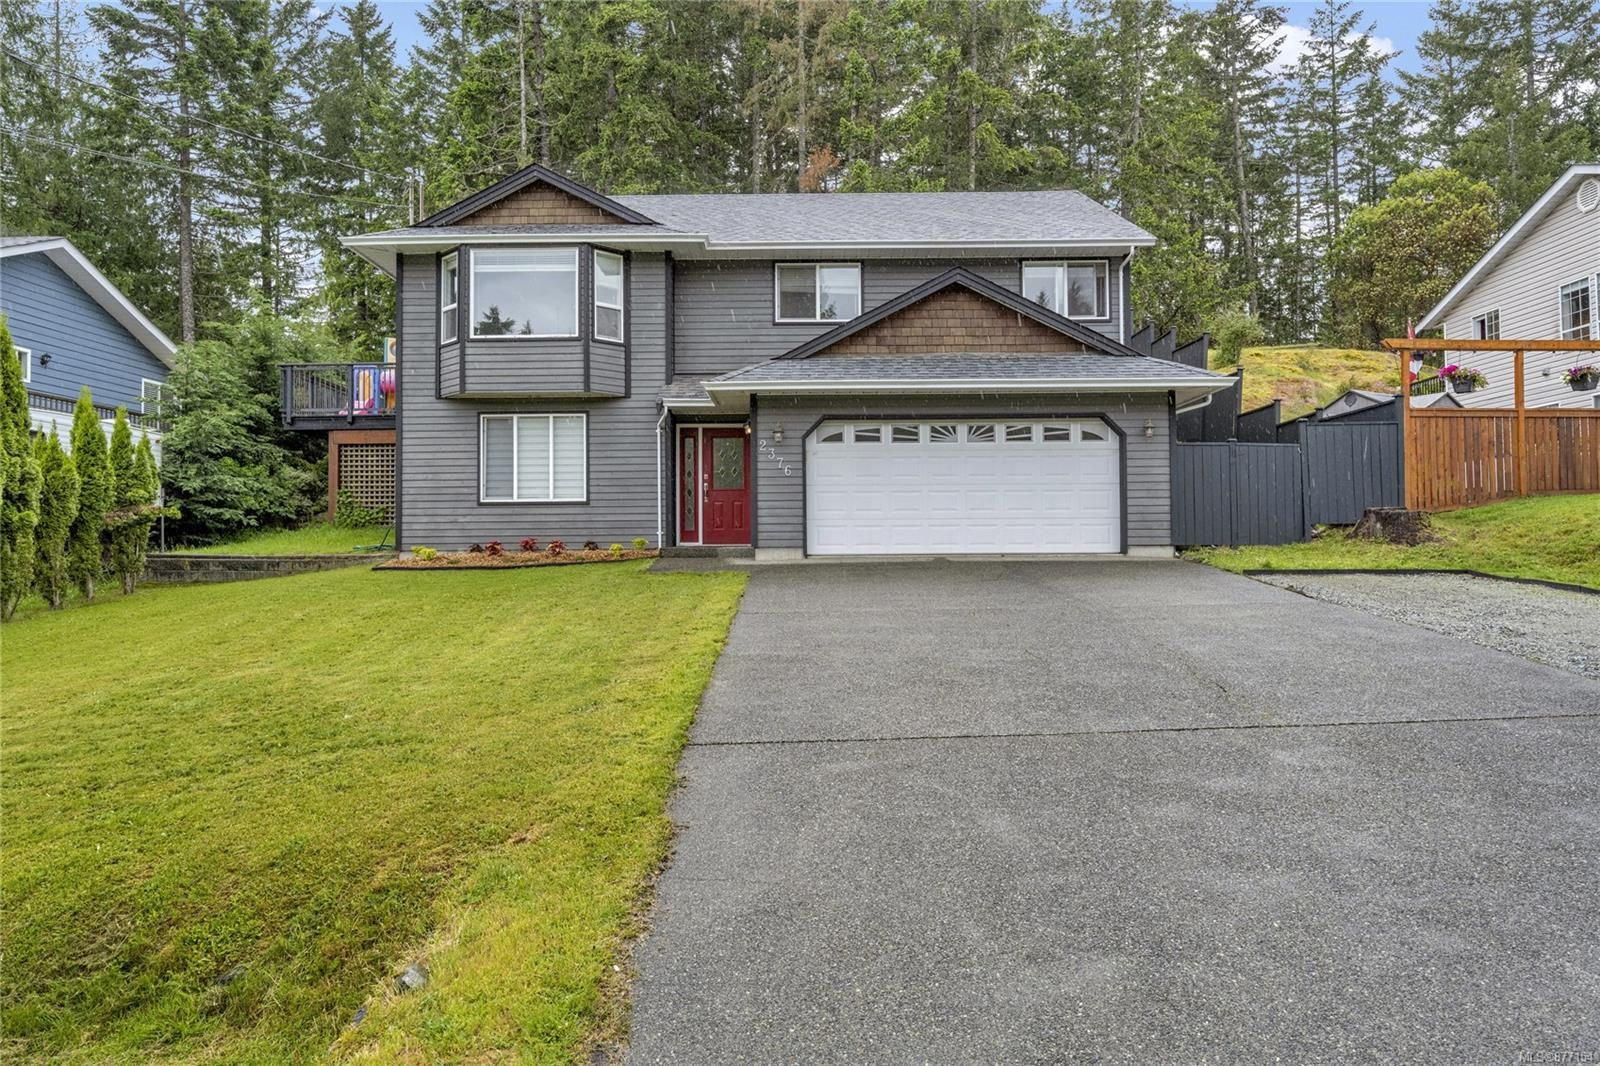 Photo 2: Photos: 2376 Terrace Rd in : ML Shawnigan House for sale (Malahat & Area)  : MLS®# 877154